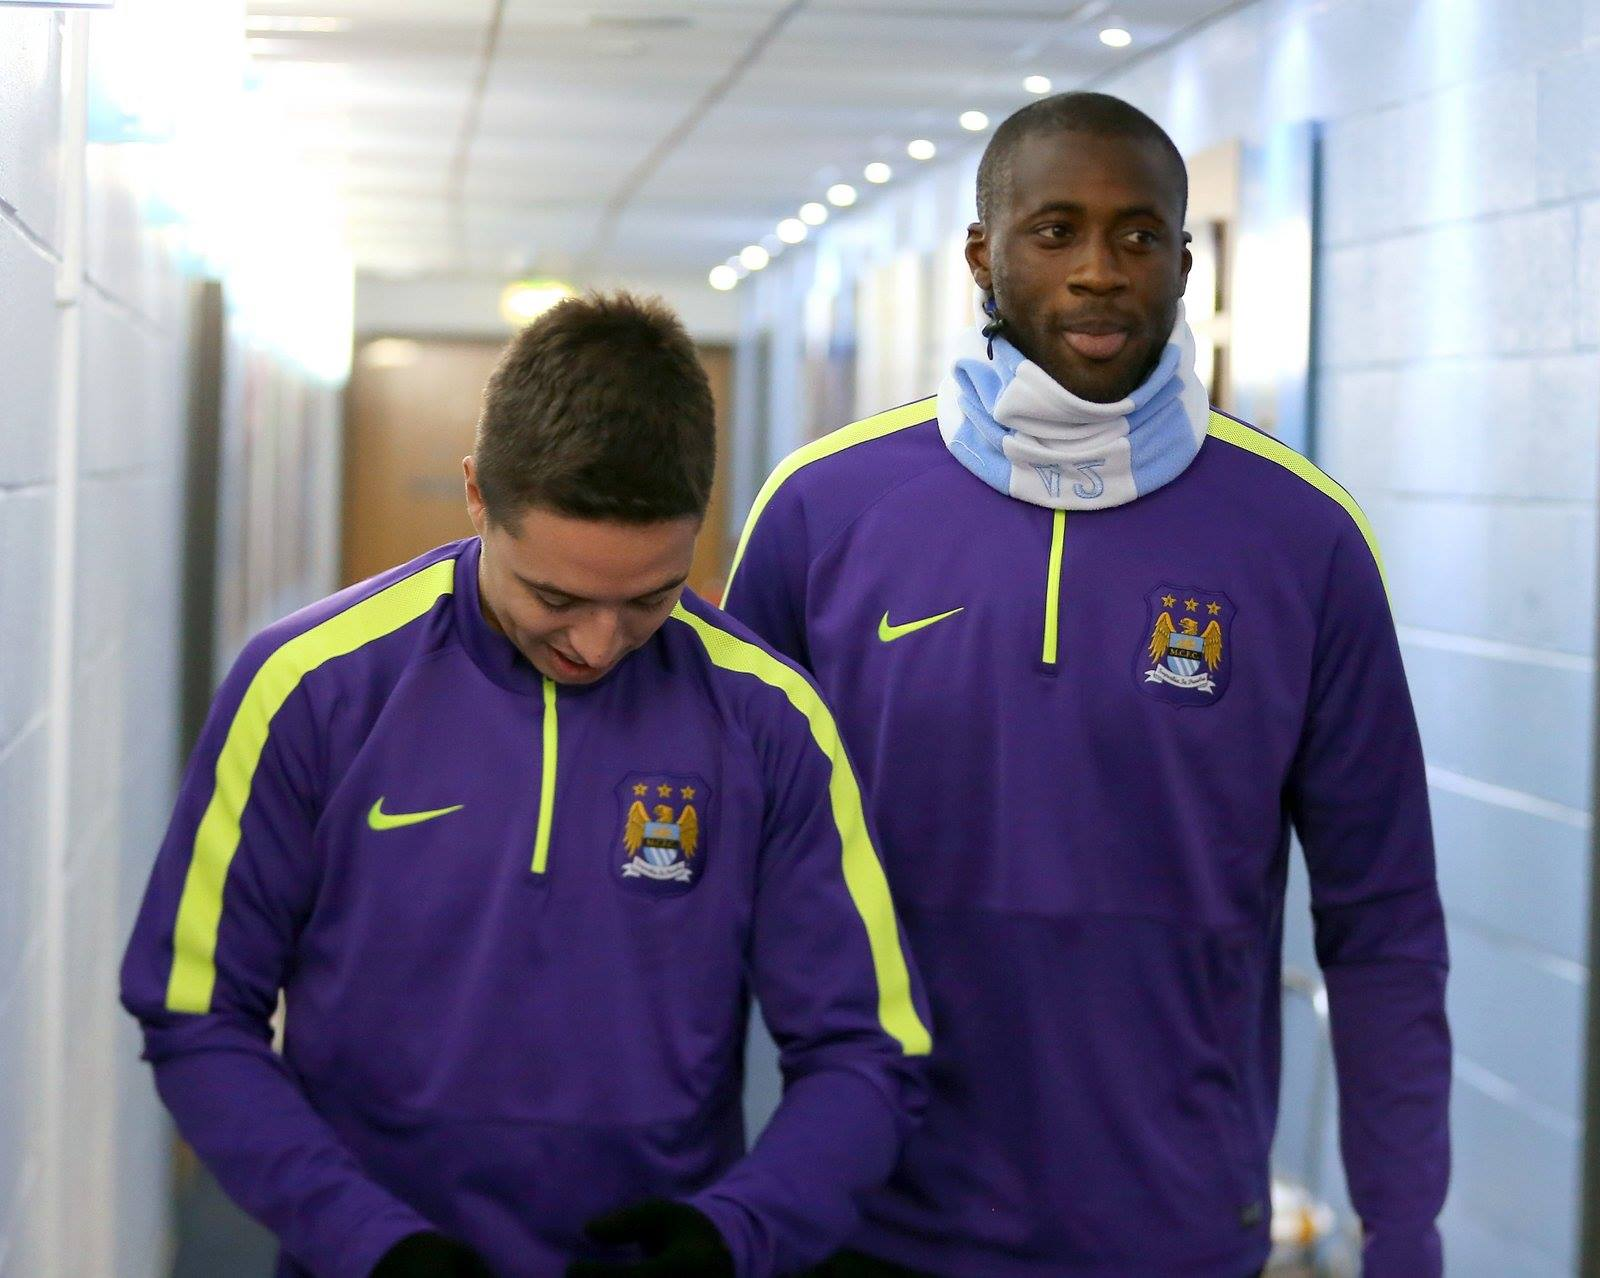 Wrap up - on a cold Manchester night Yaya and Samir need to give the Russians a red hot roasting. Courtesy@MCFC